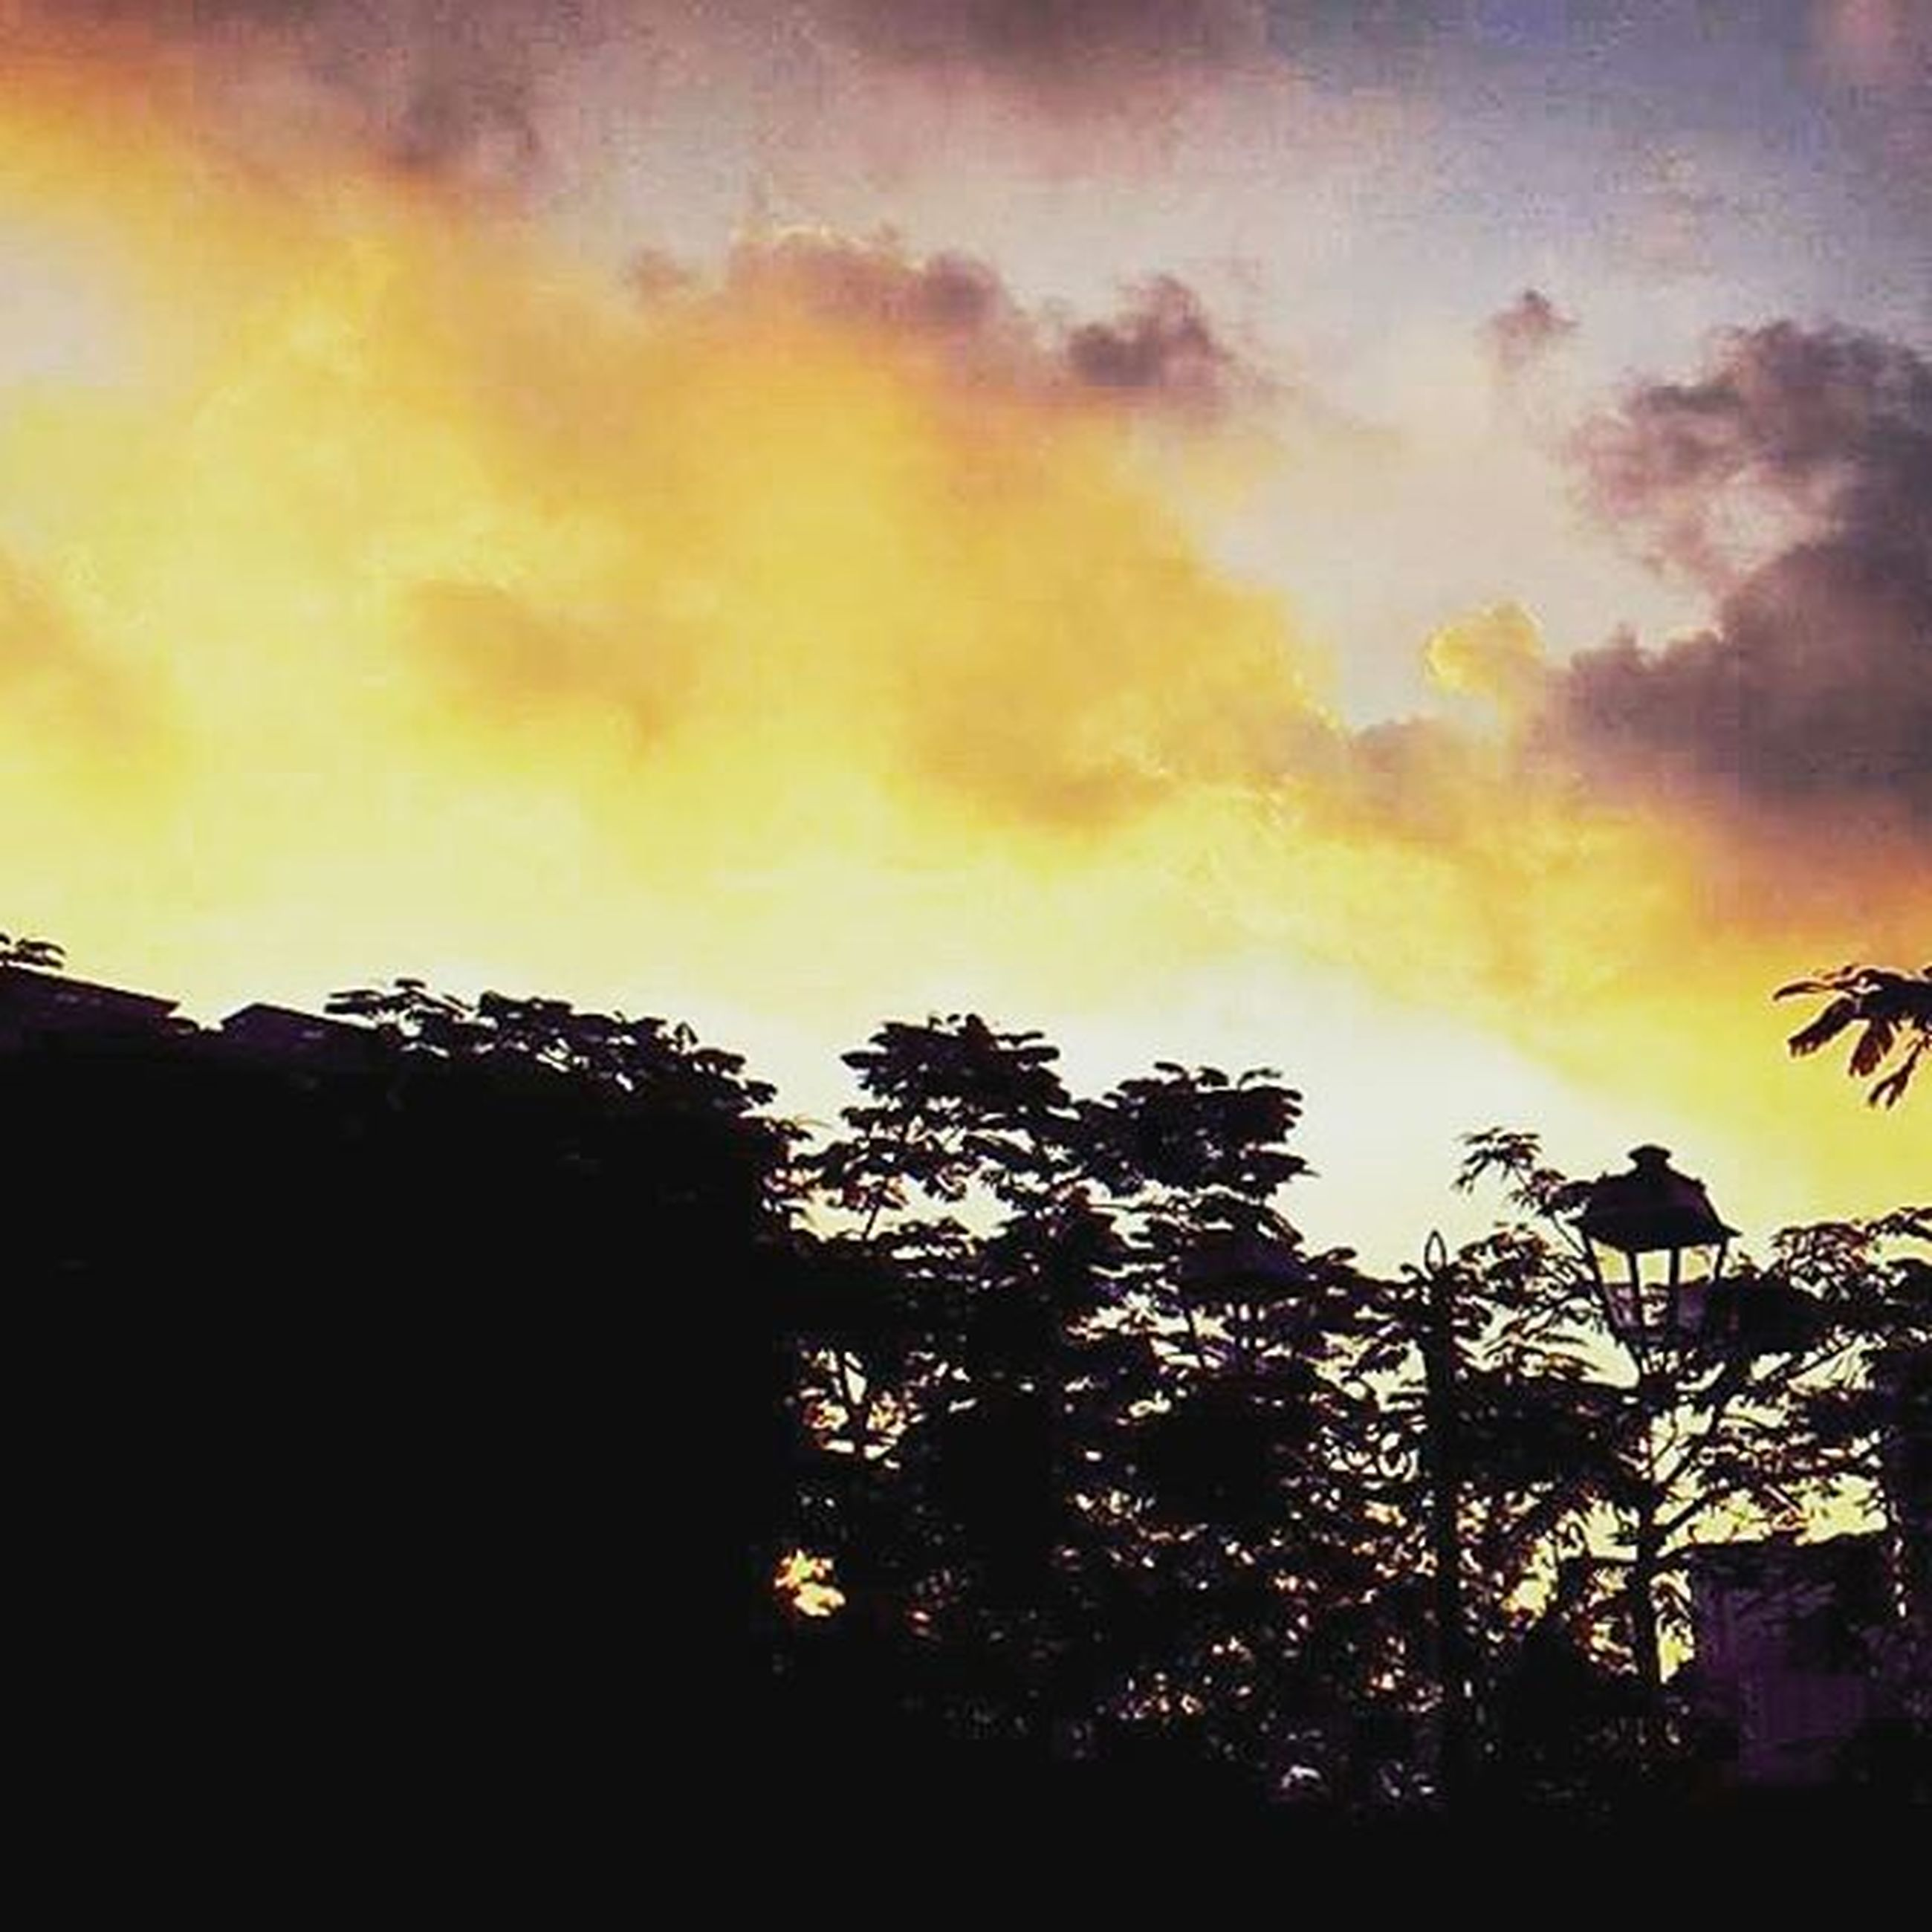 sky, sunset, silhouette, low angle view, cloud - sky, building exterior, built structure, architecture, tree, cloudy, dusk, orange color, house, nature, cloud, outdoors, street light, beauty in nature, no people, overcast